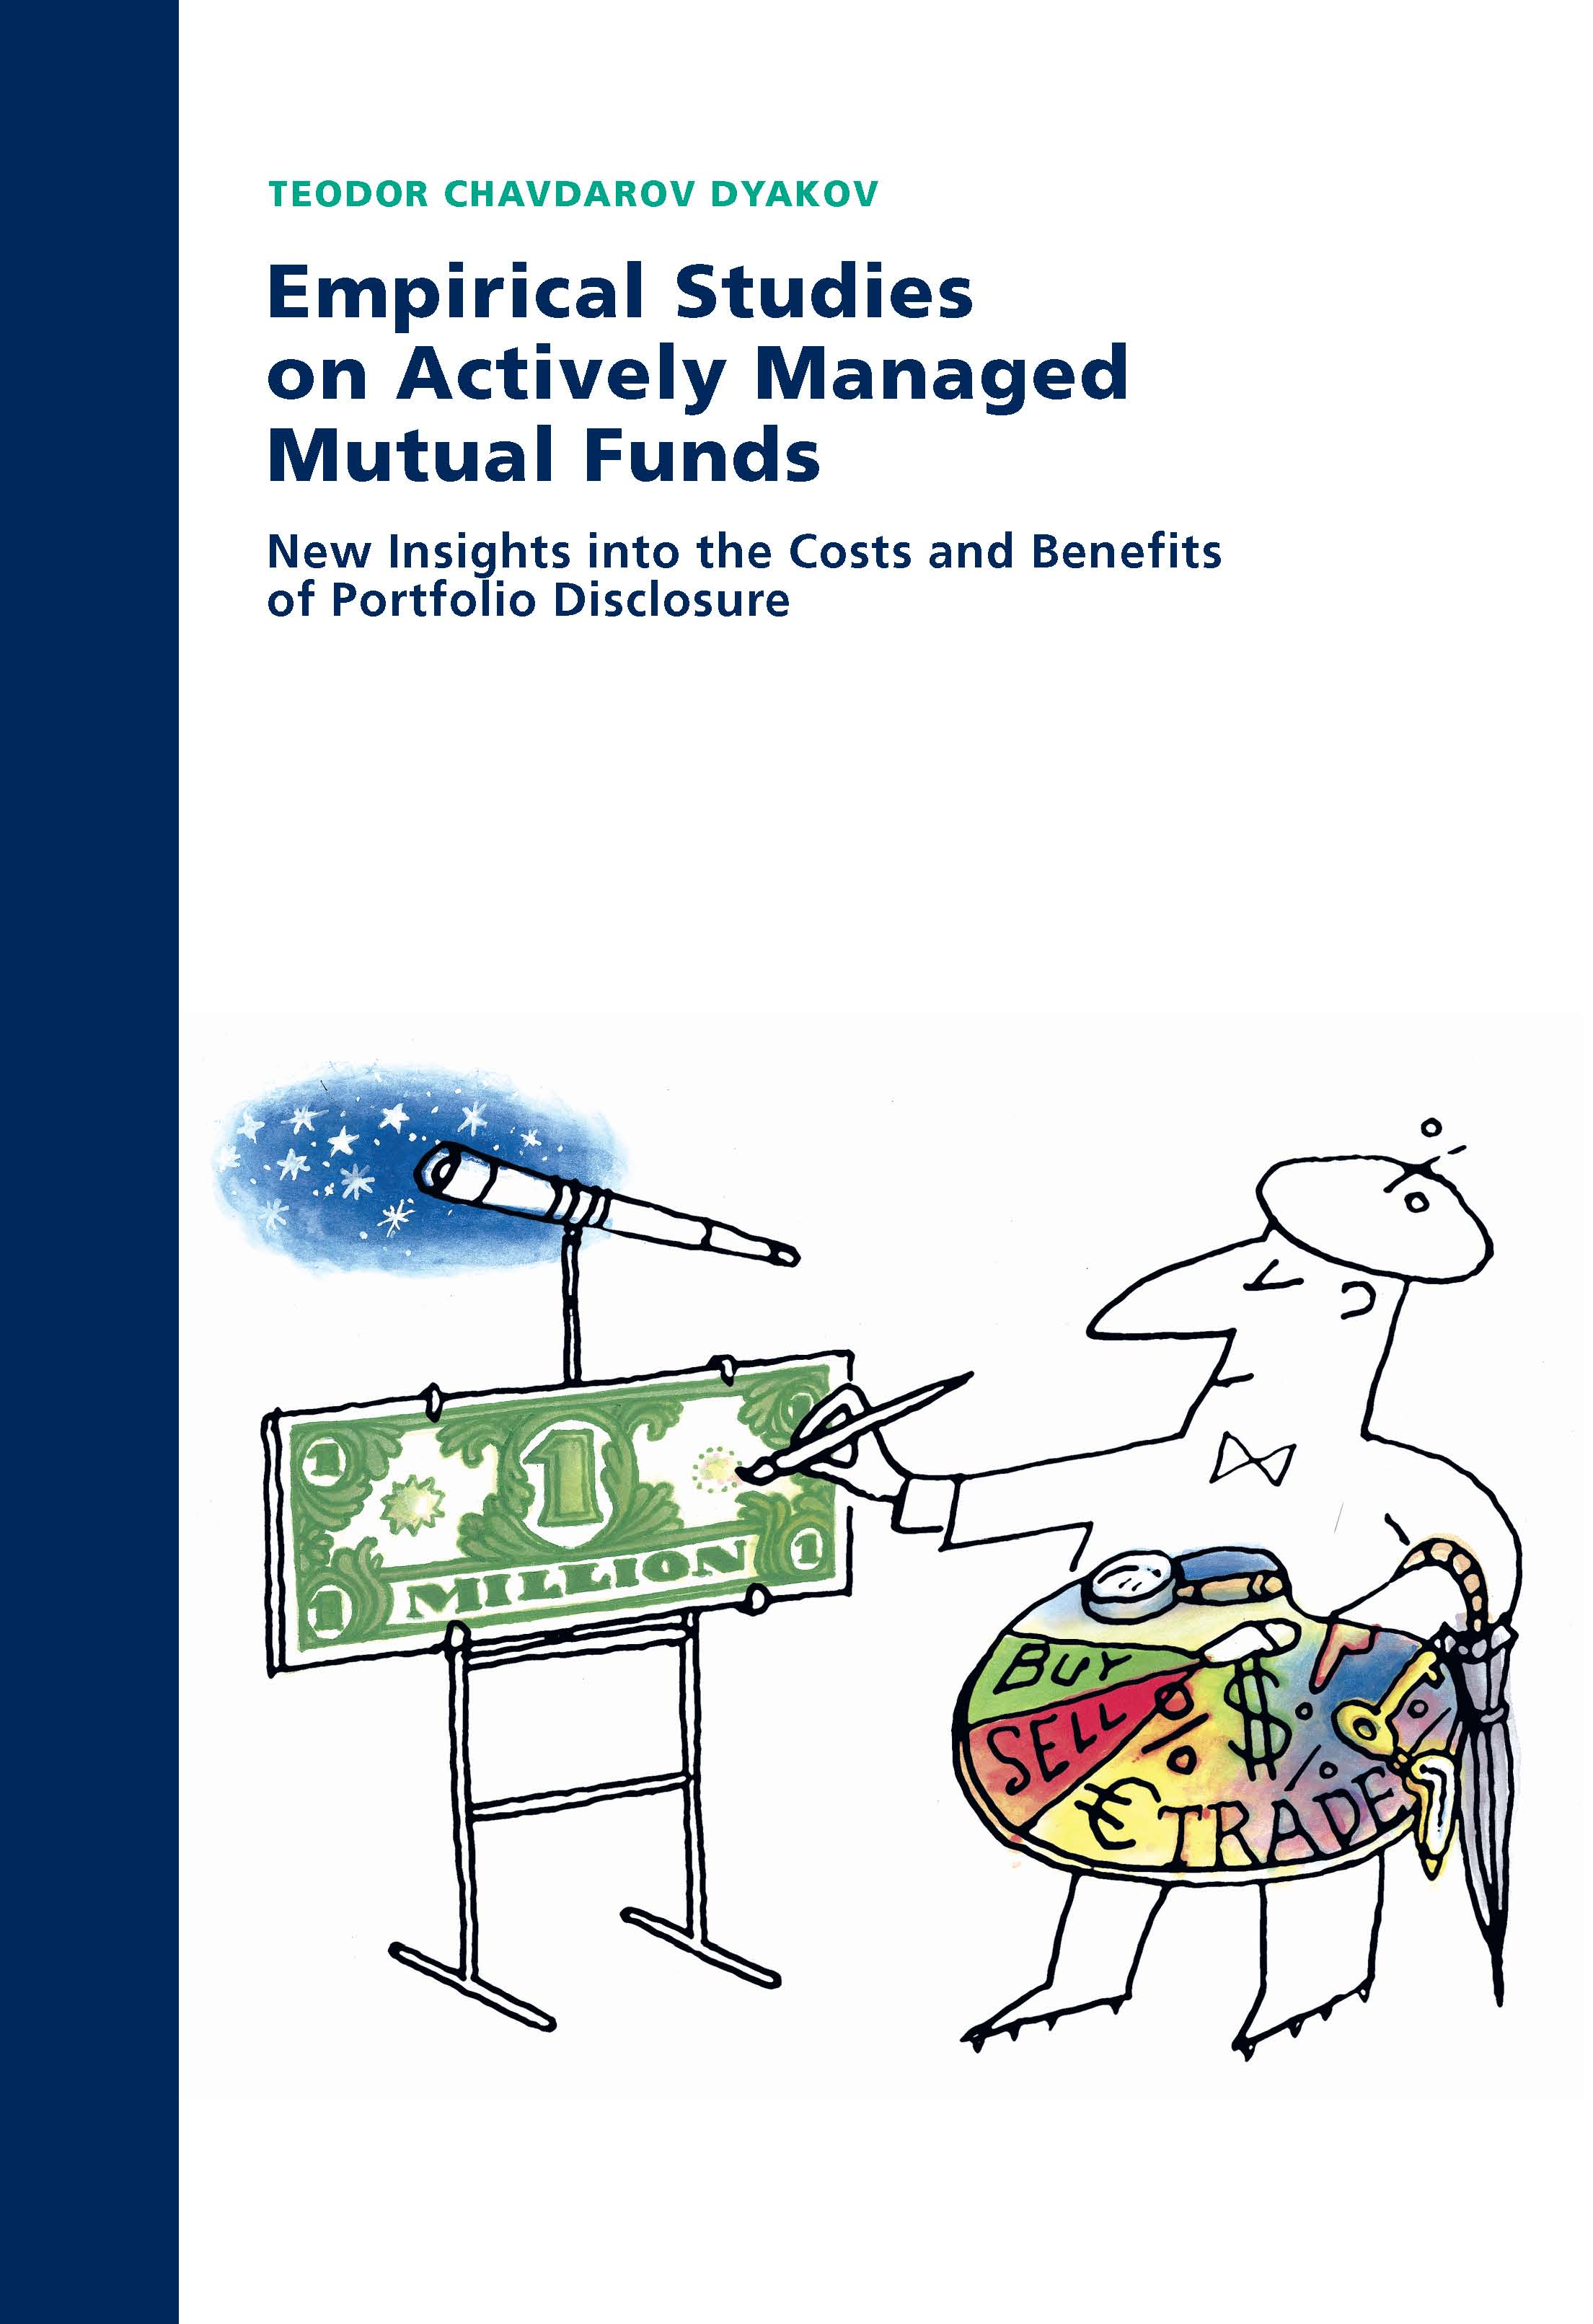 Empirical Studies on Actively Managed Mutual Funds: New Insights into the Costs and Benefits of Portfolio Disclosure